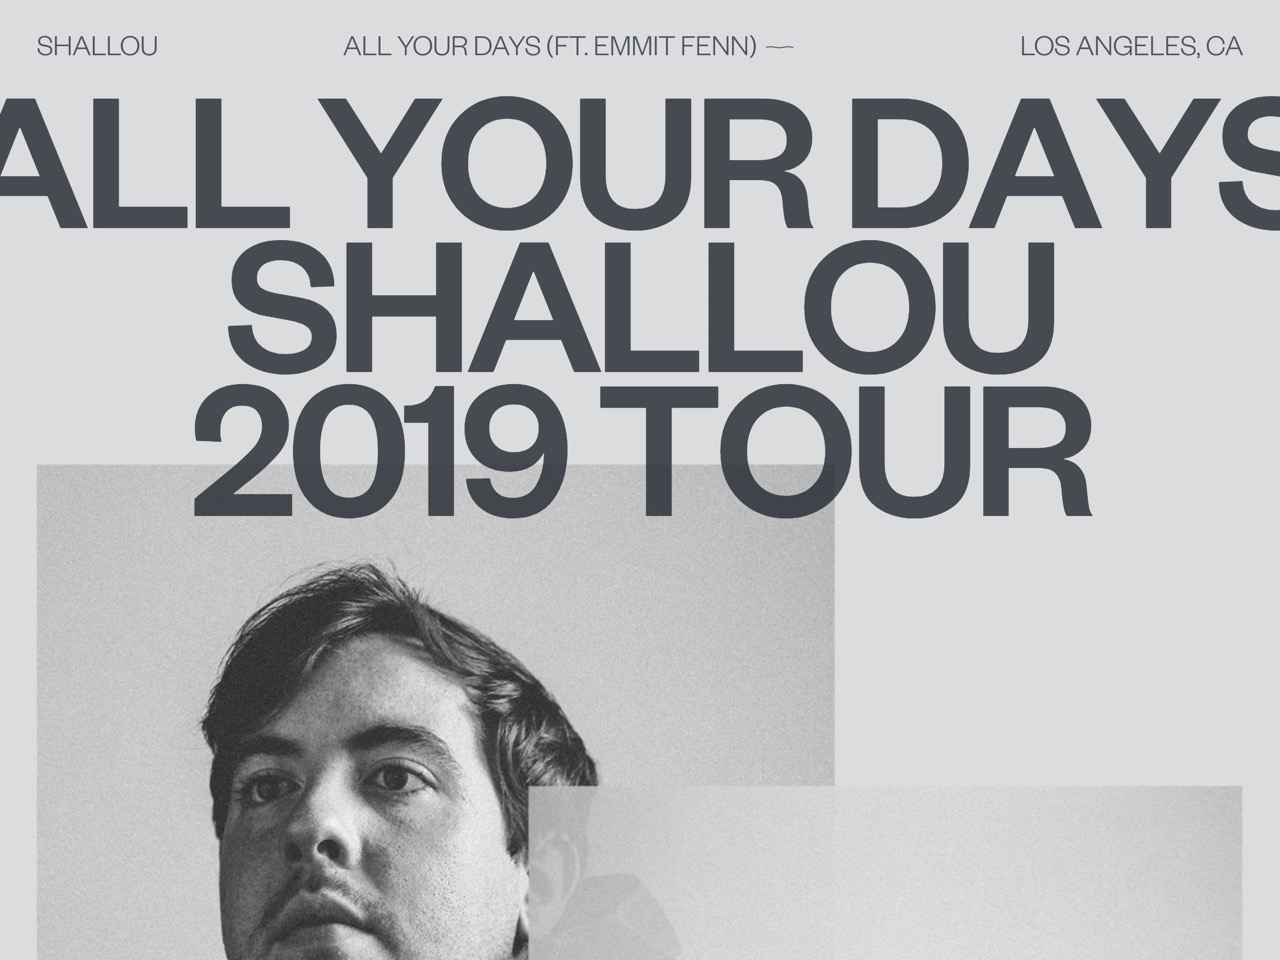 Shallou   all your days   2019 tour